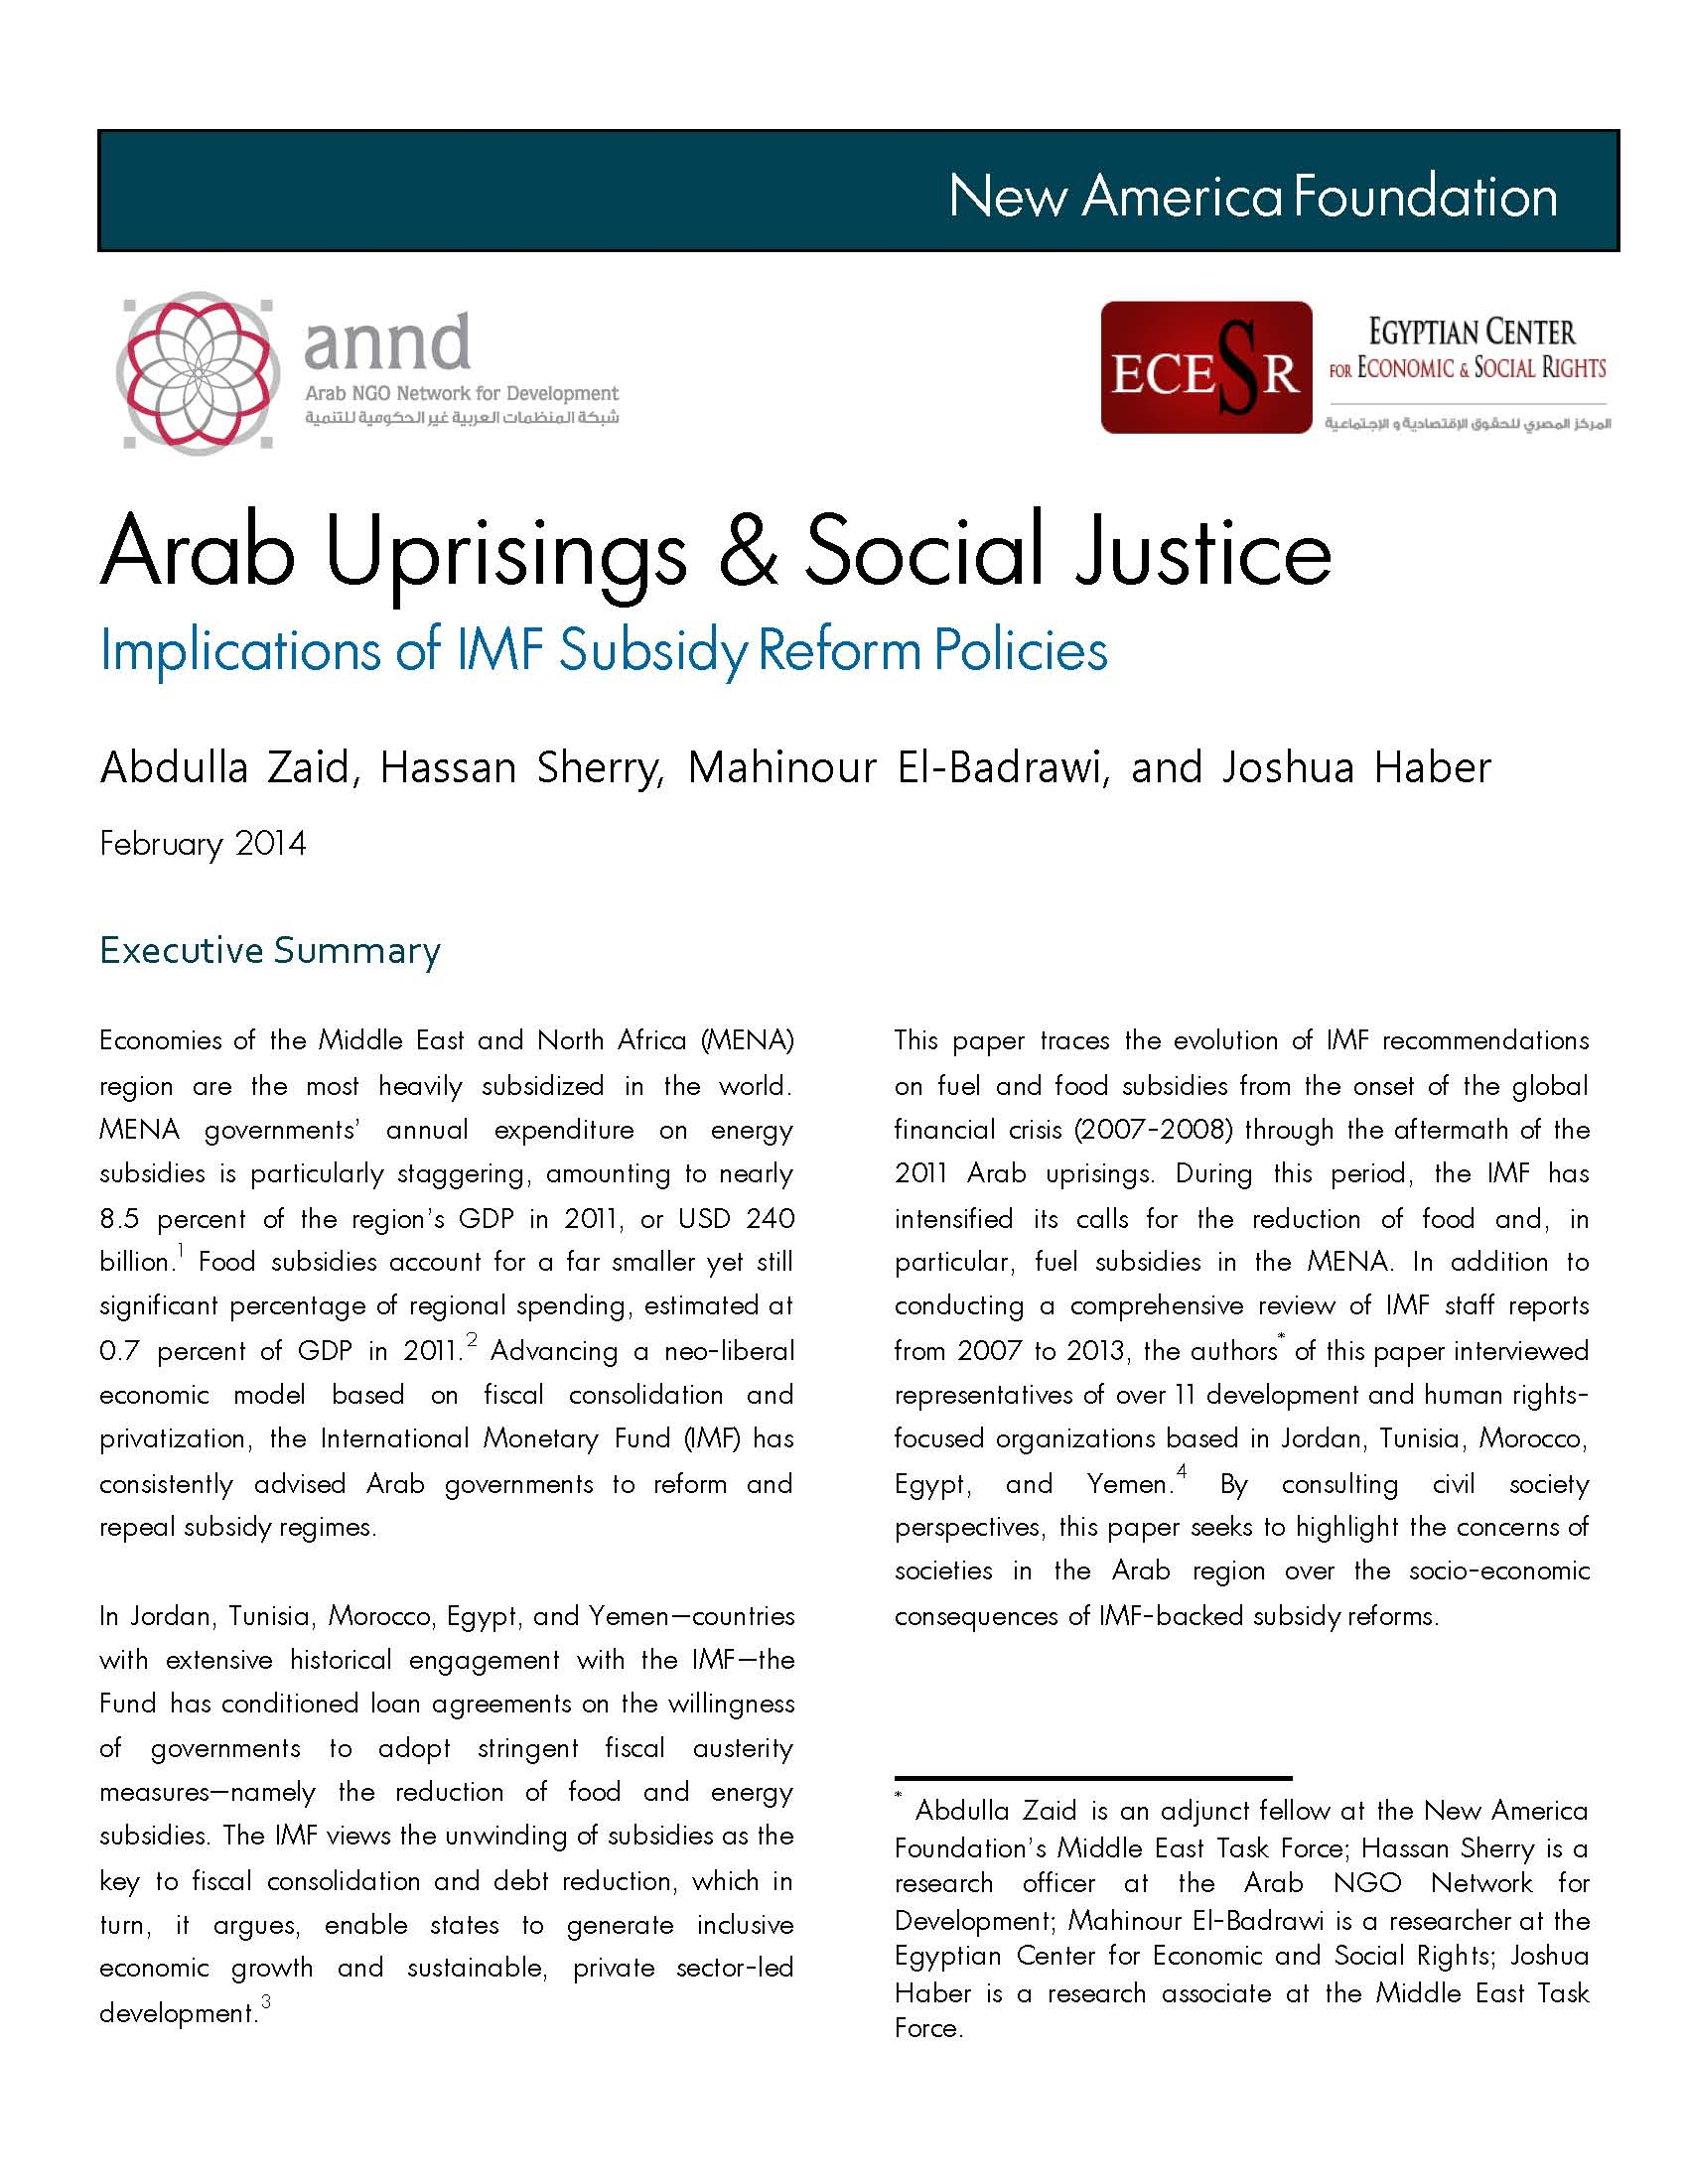 Arab uprisings and Social Justice, implications of IMF subsidy reform policies